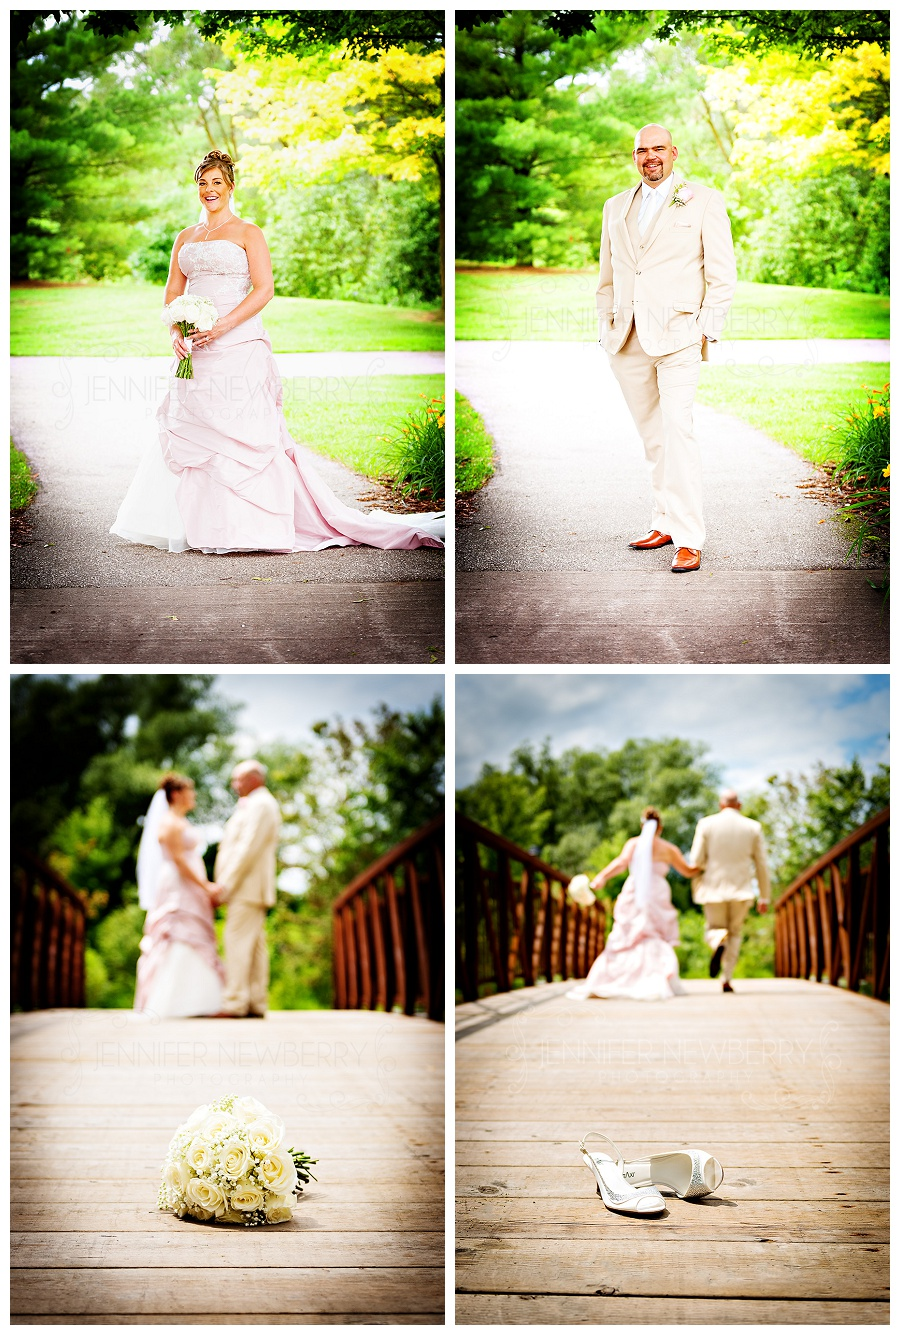 Newmarket Fairy Lake wedding photos by Newmarket wedding photographer www.jnphotography.ca @filemanager